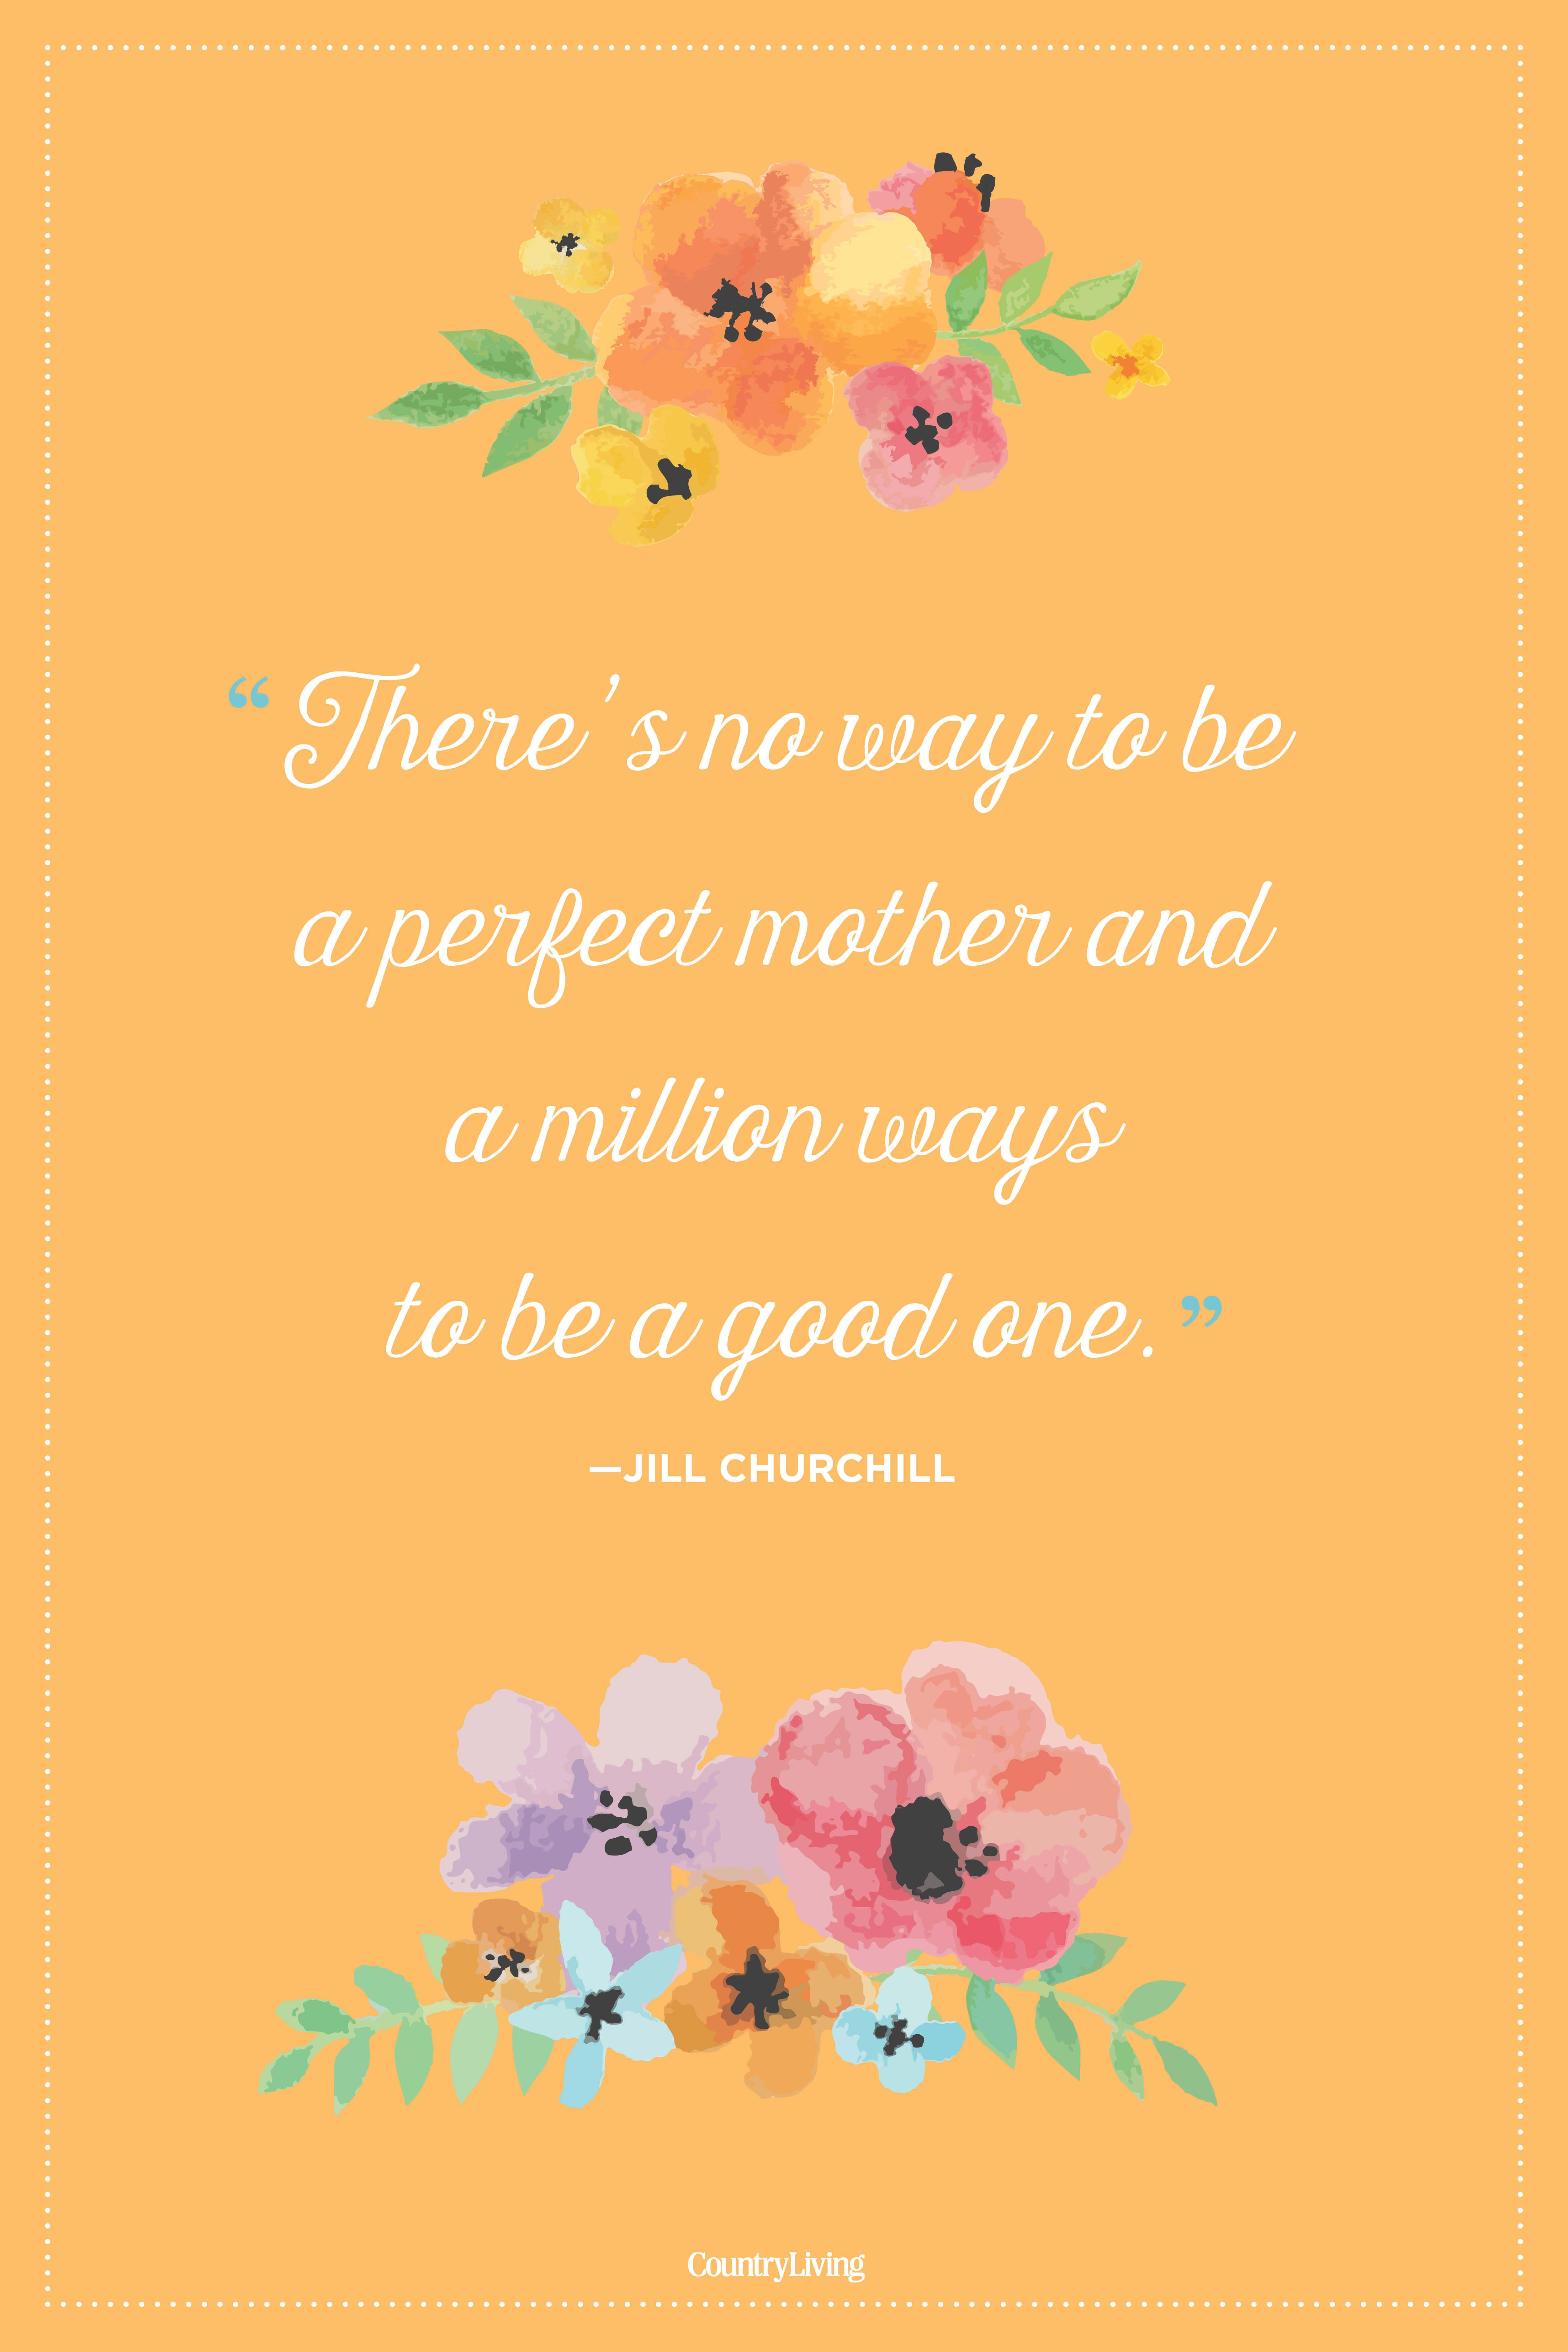 24 Short Mothers Day Quotes And Poems - Meaningful Happy Mother s Day  Sayings 9bc1c8f707b0